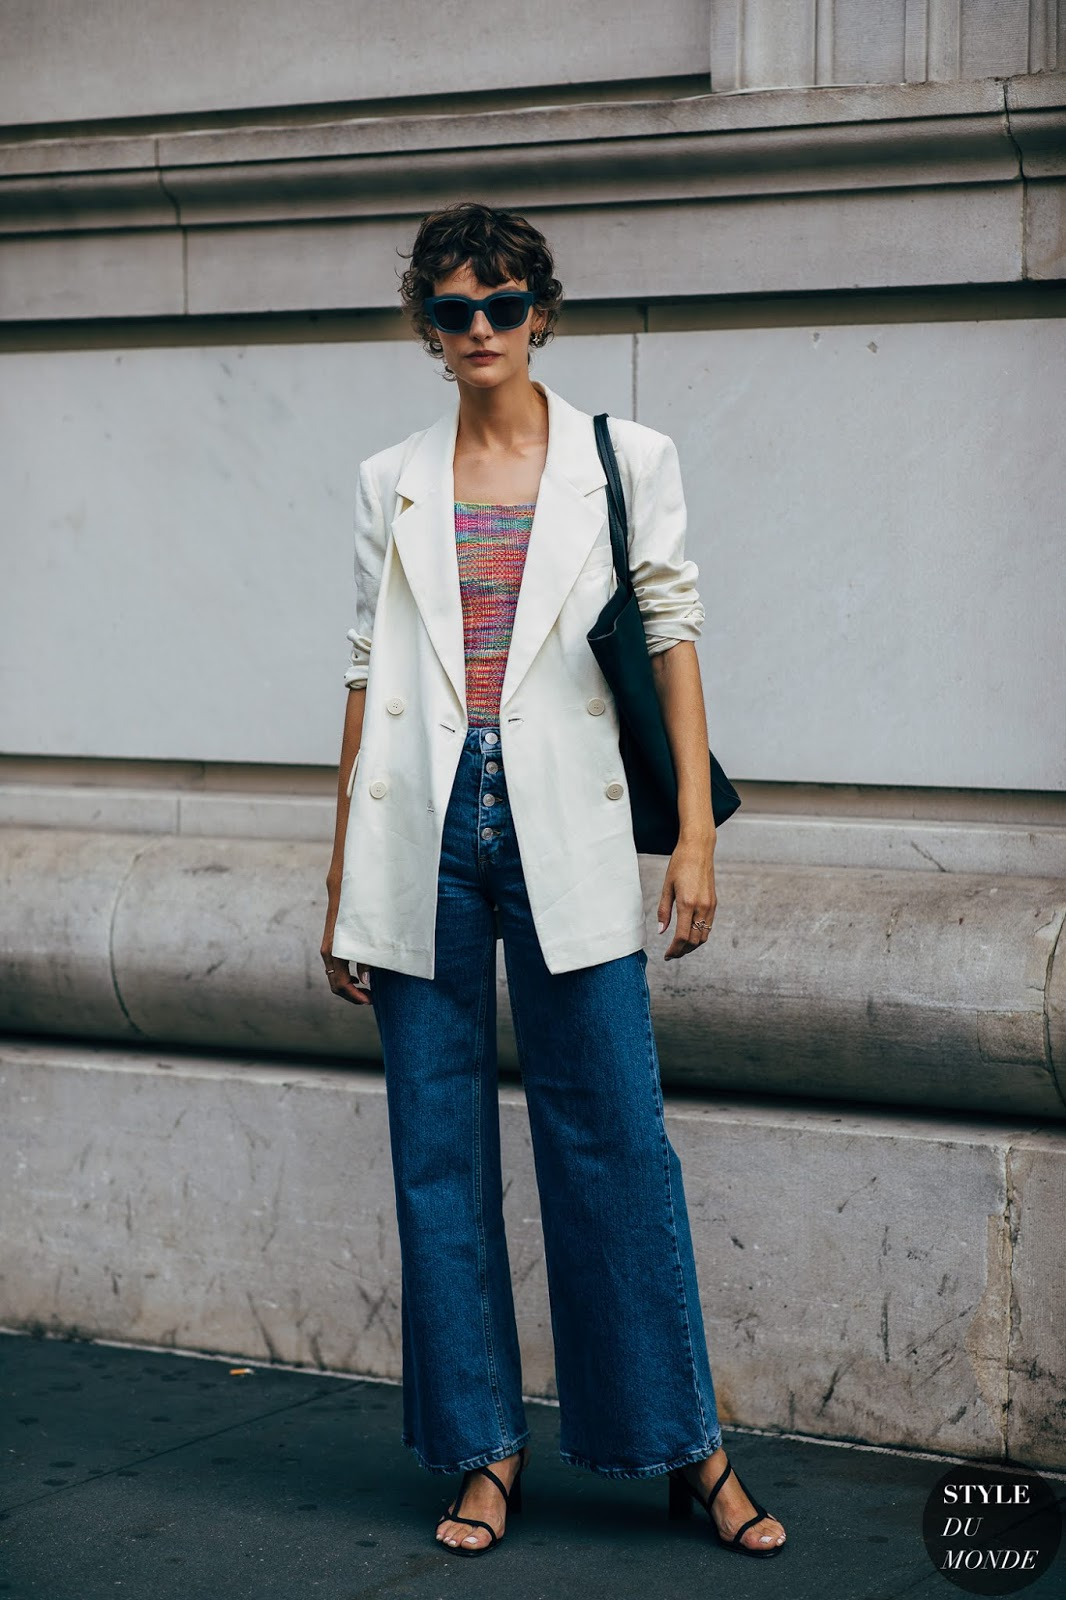 This Model Wears the Chic Blazer That You Need to Buy Immediately